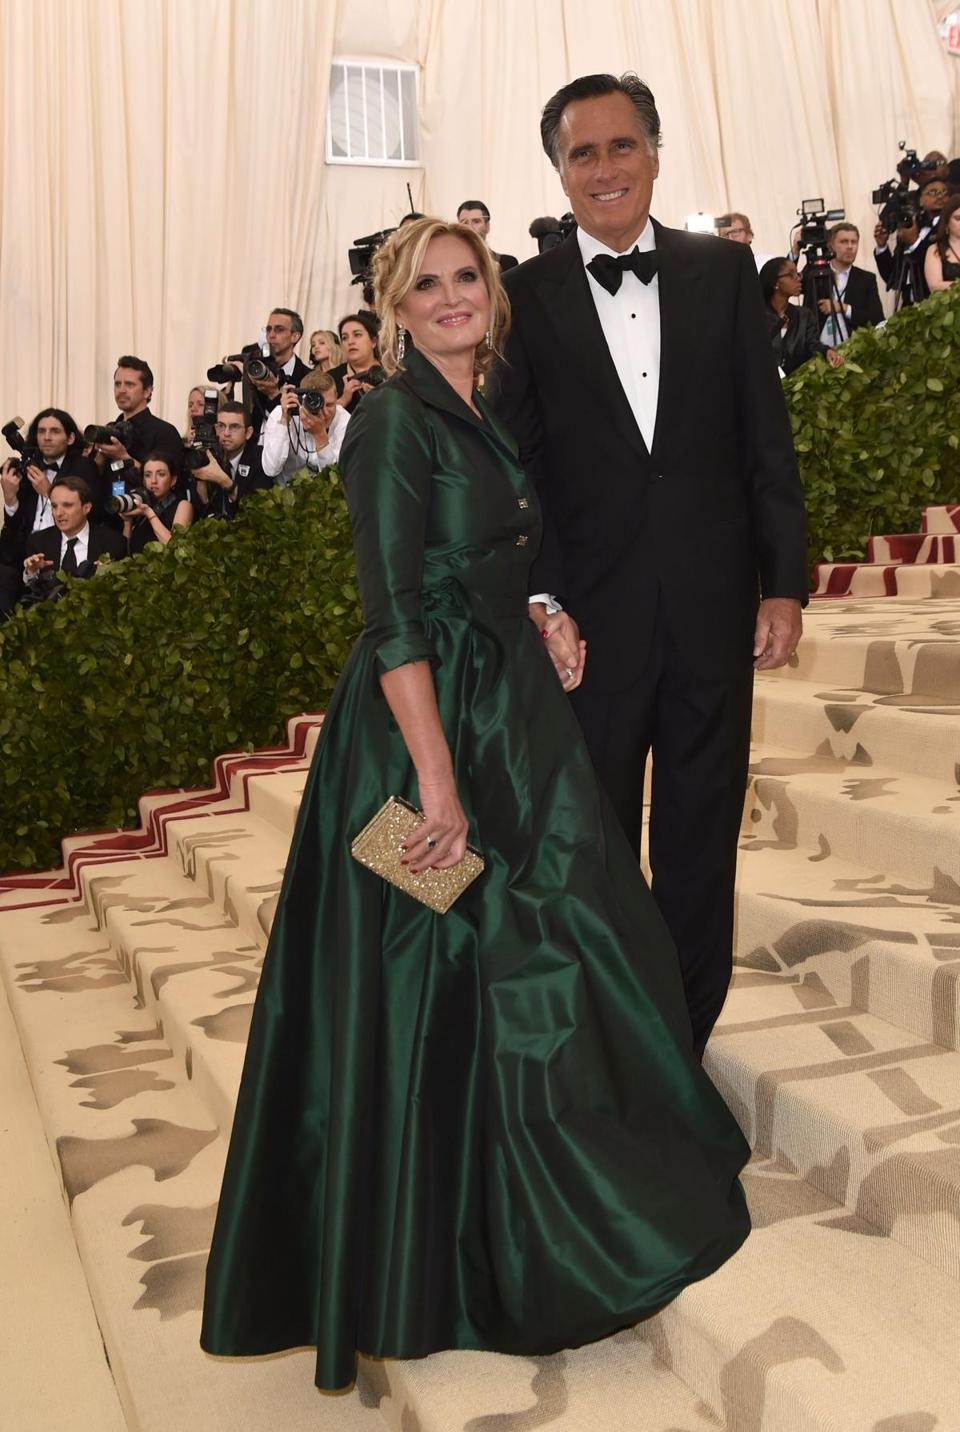 Mitt Romney and Ann Romney arrive for the 2018 Met Gala on May 7, 2018, at the Metropolitan Museum of Art in New York. The Gala raises money for the Metropolitan Museum of Arts Costume Institute. The Gala's 2018 theme is Heavenly Bodies: Fashion and the Catholic Imagination. / AFP PHOTO / Hector RETAMALHECTOR RETAMAL/AFP/Getty Images